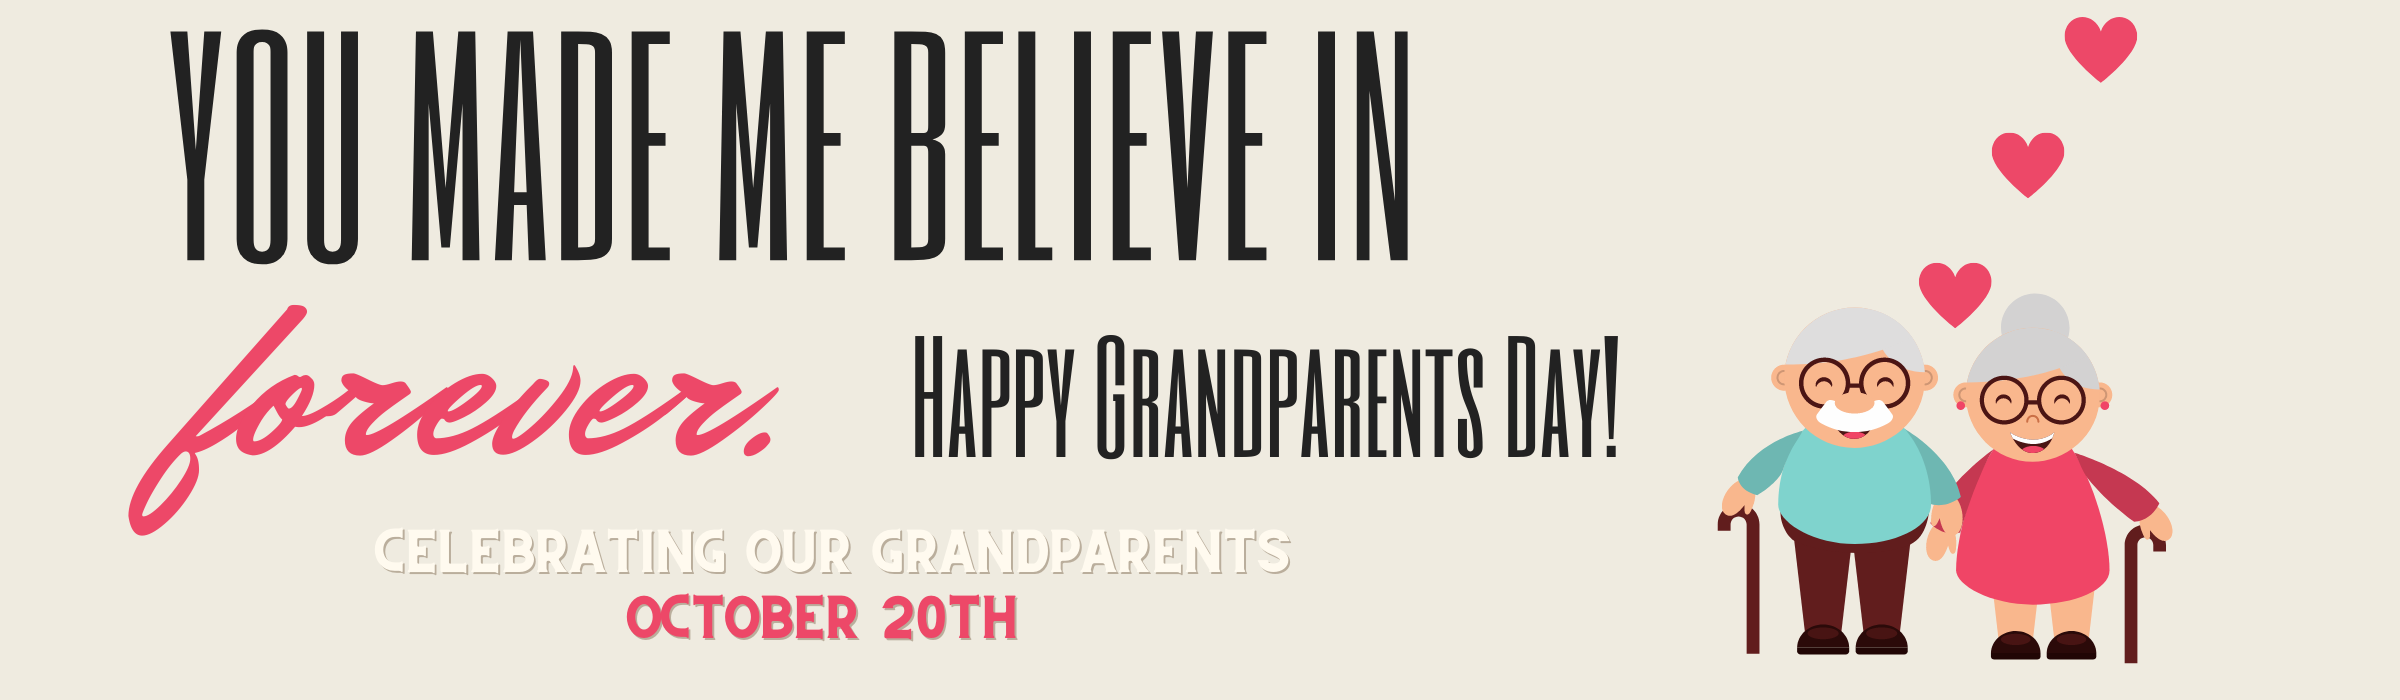 Grandparents-Day-Banners